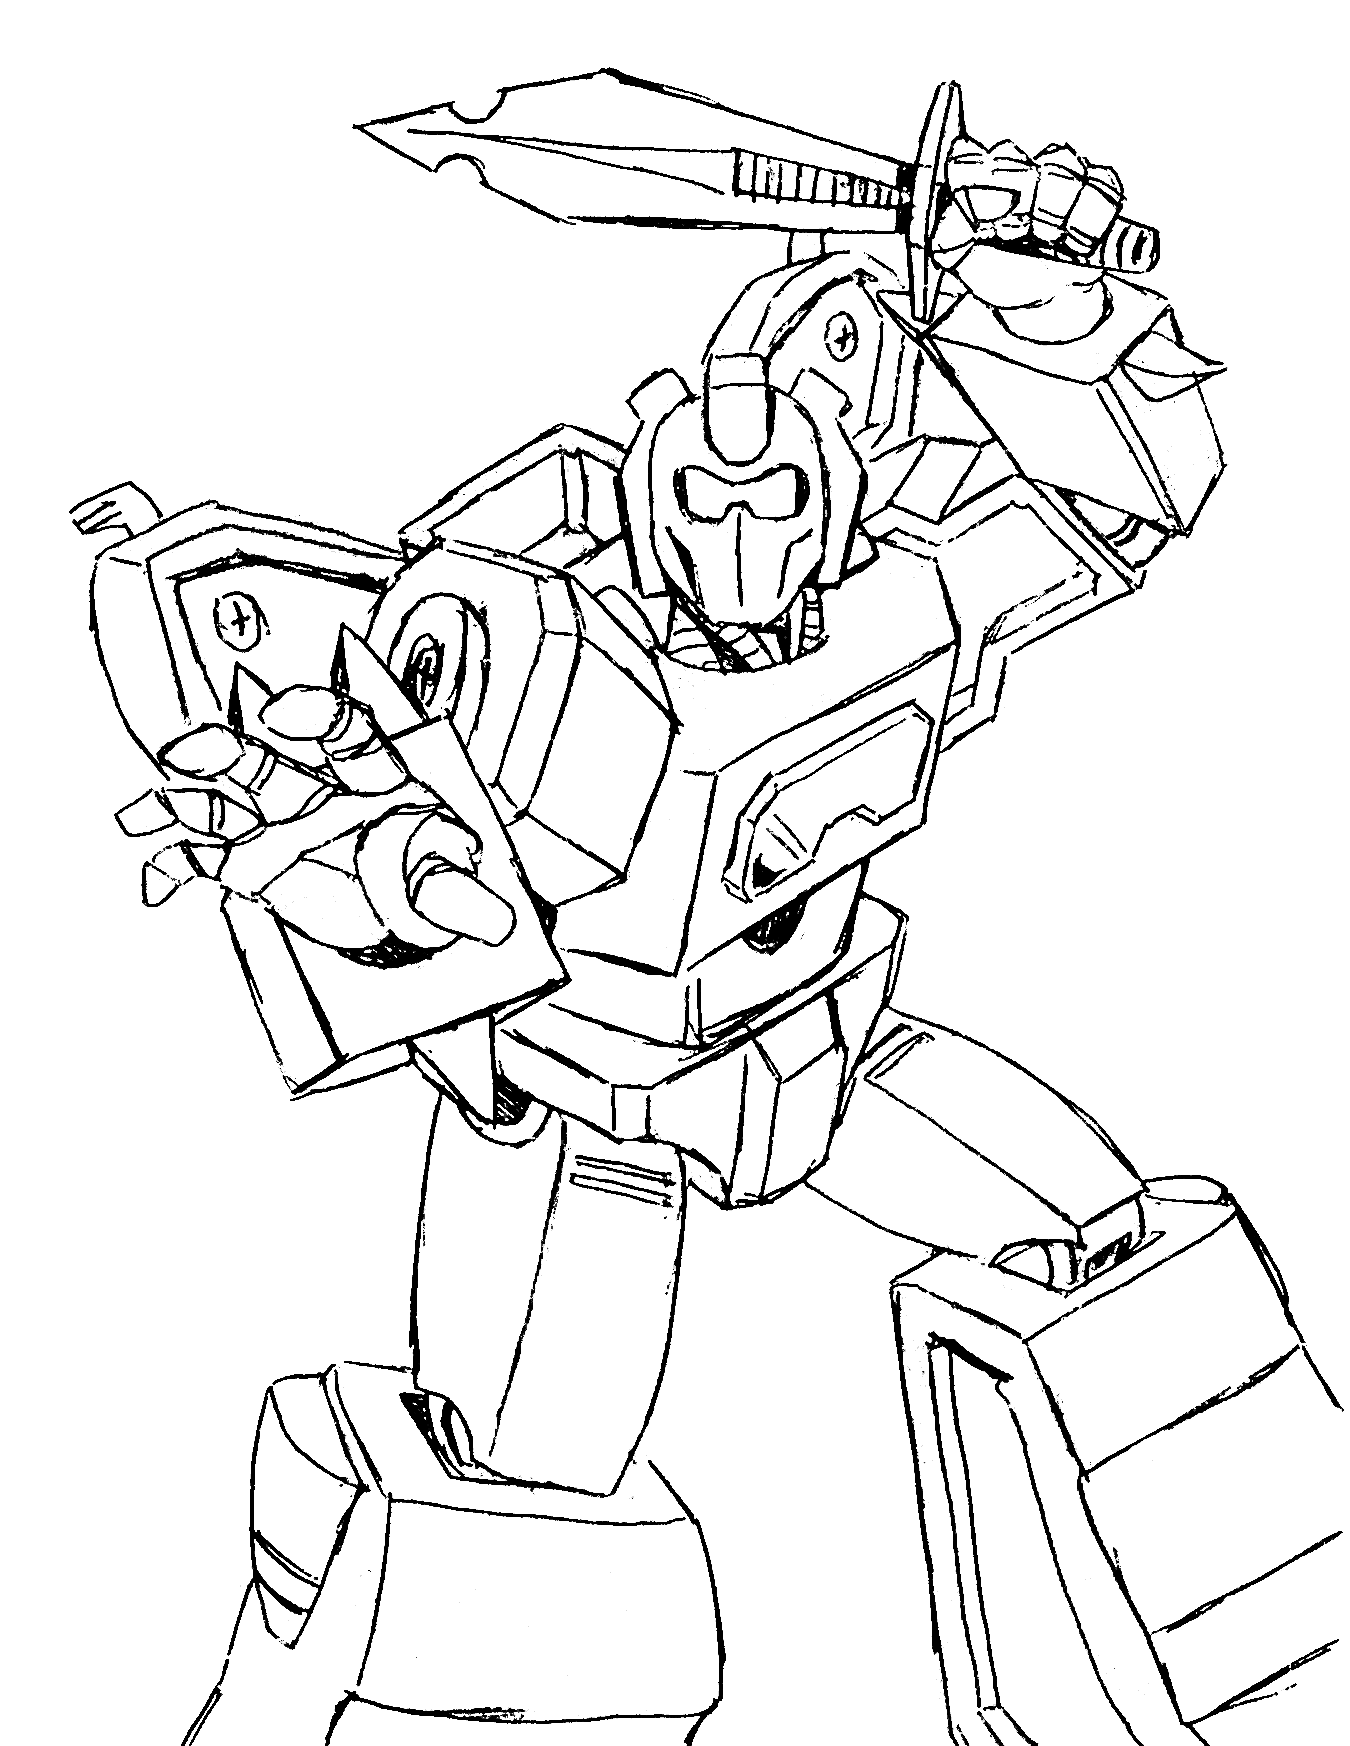 Online coloring transformers - Transformers Was Issued Swords Coloring Page Transformer Coloring Pages Kidsdrawing Free Coloring Pages Online